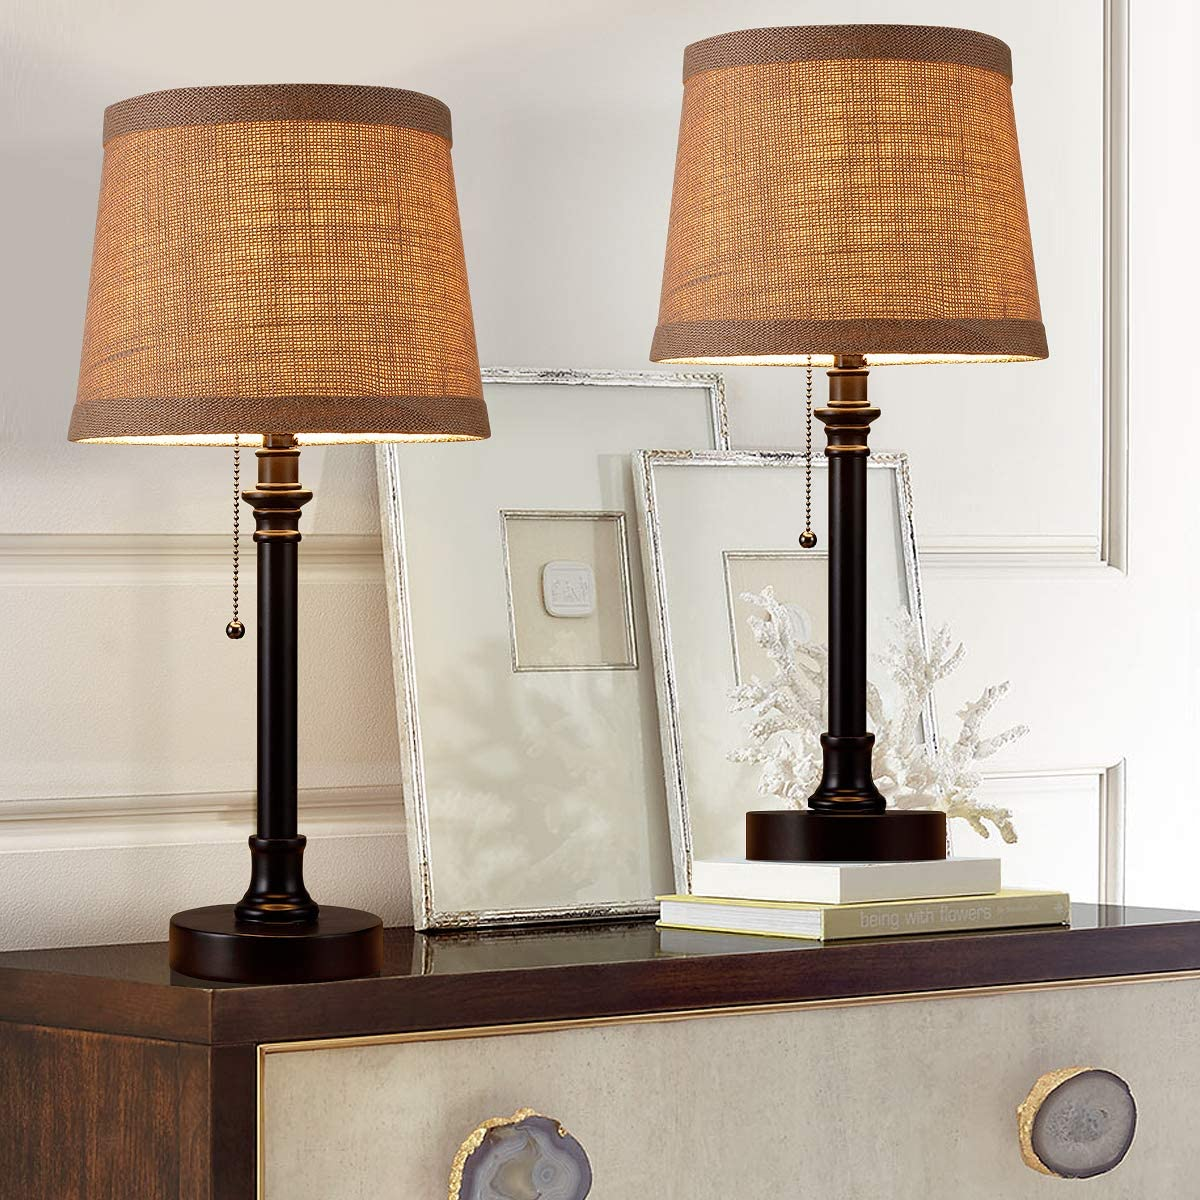 Oneach Recommended Maria Rustic Table Lamp Set 2 Desk mart Bedside of Readin